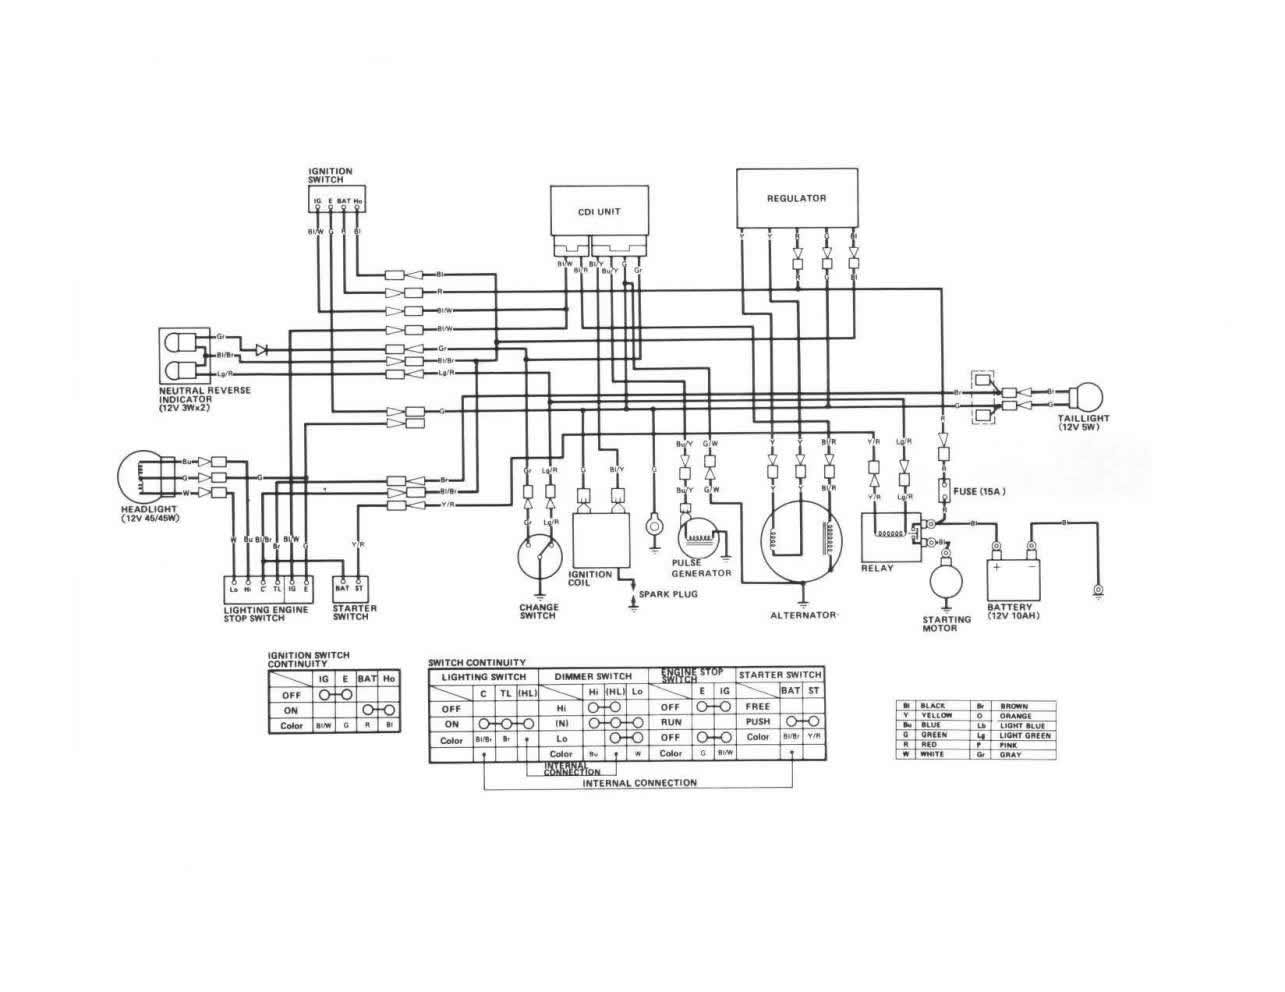 1986 Atv diagram honda wiring